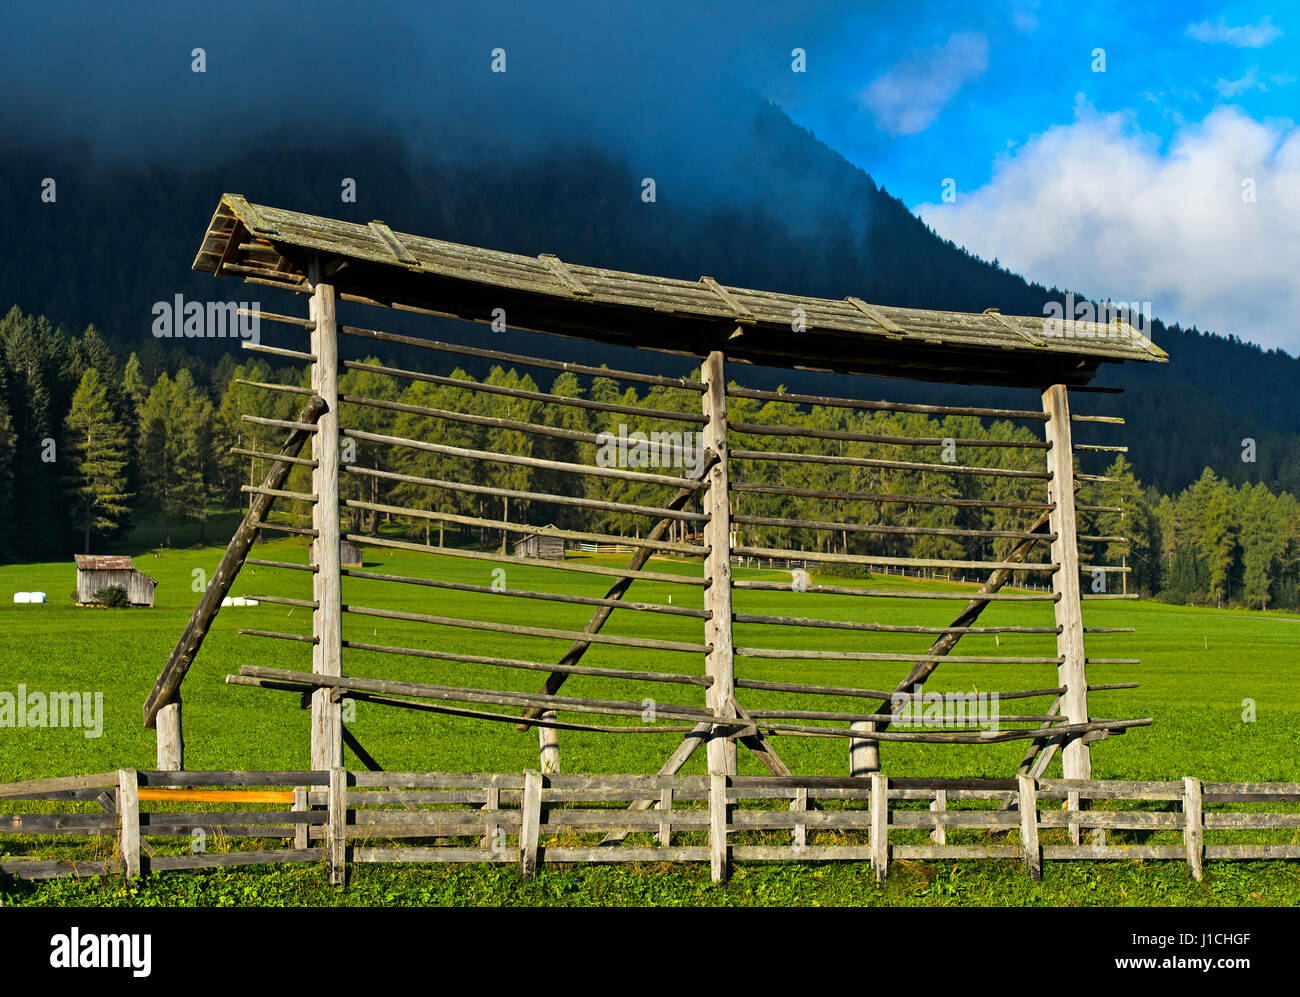 Traditional single straight-line hayrack on an alm, Sexten, South Tyrol, Italy - Stock Image